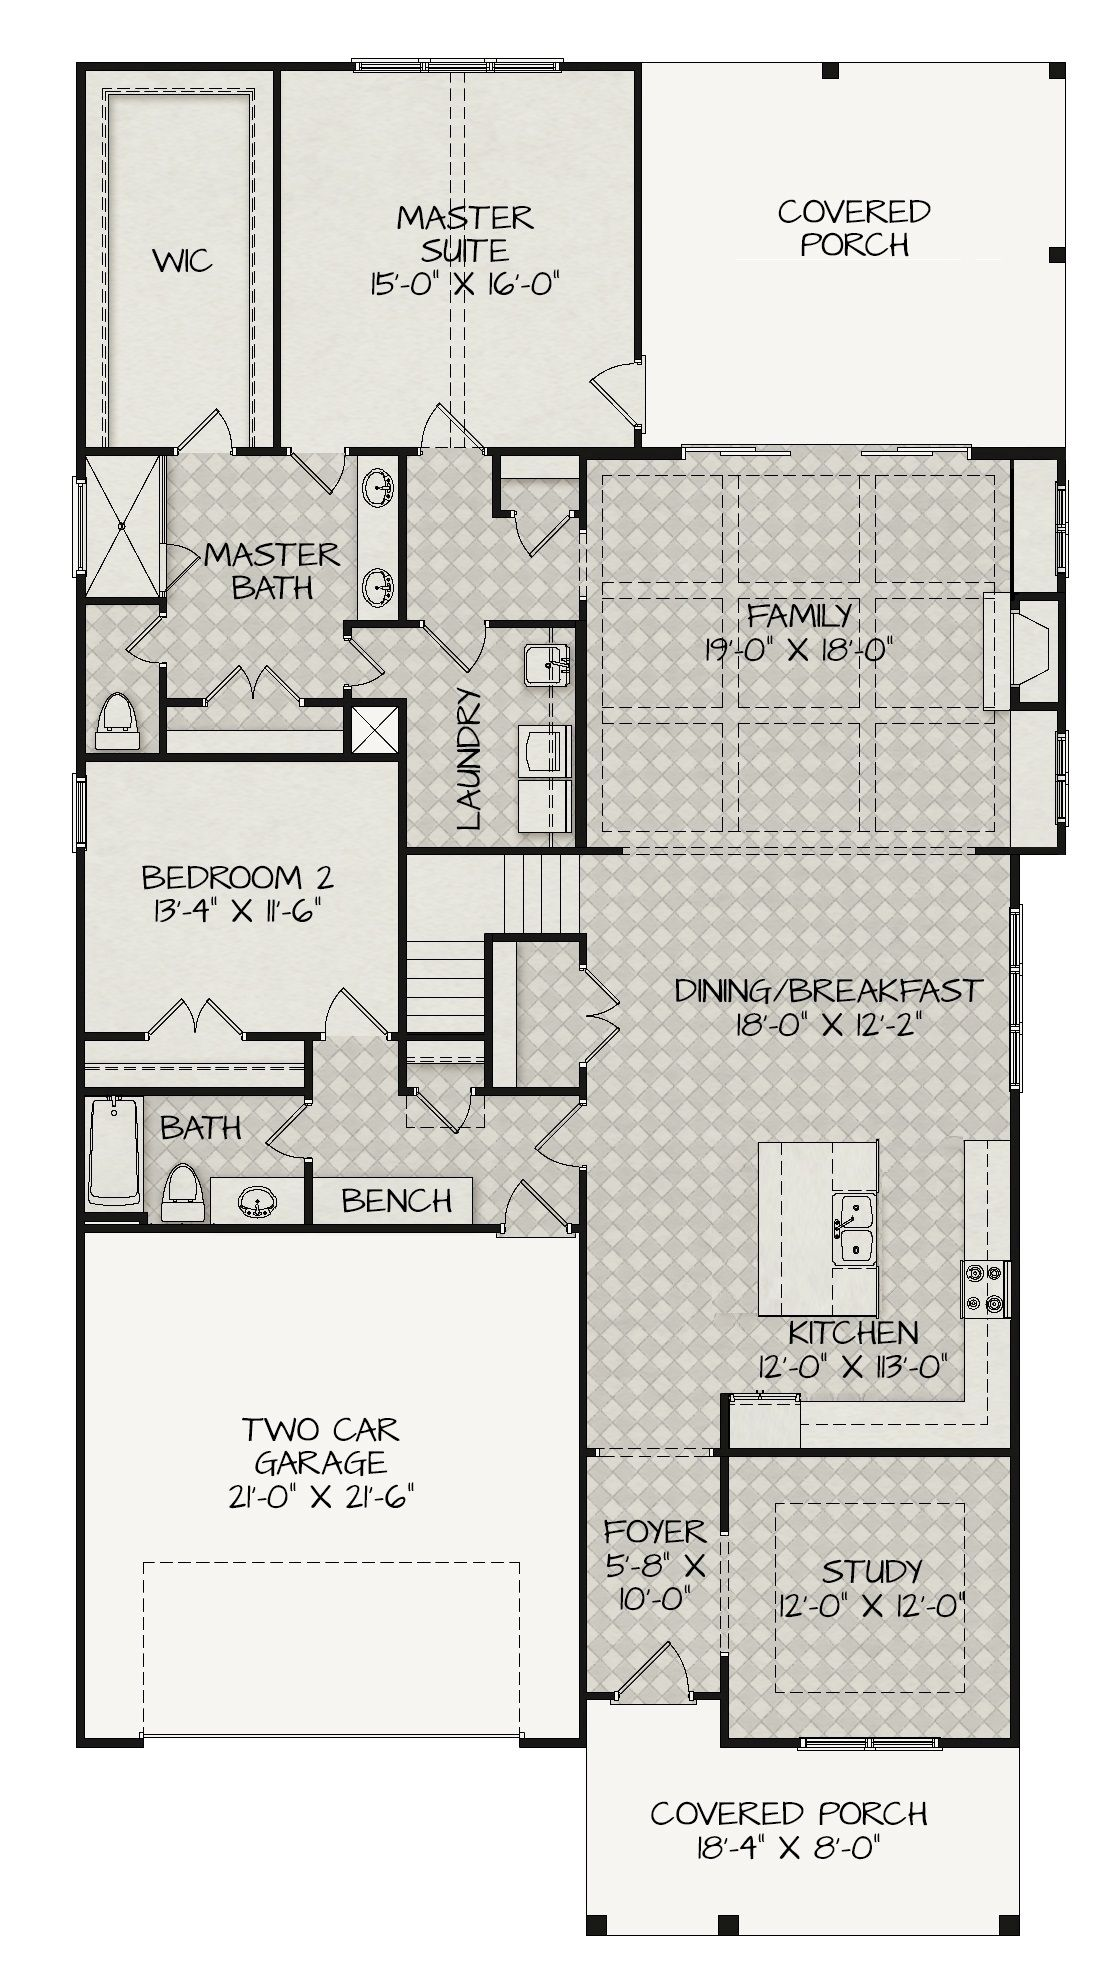 American homesmith caesar model first floor blueprints home american homesmith caesar malvernweather Images